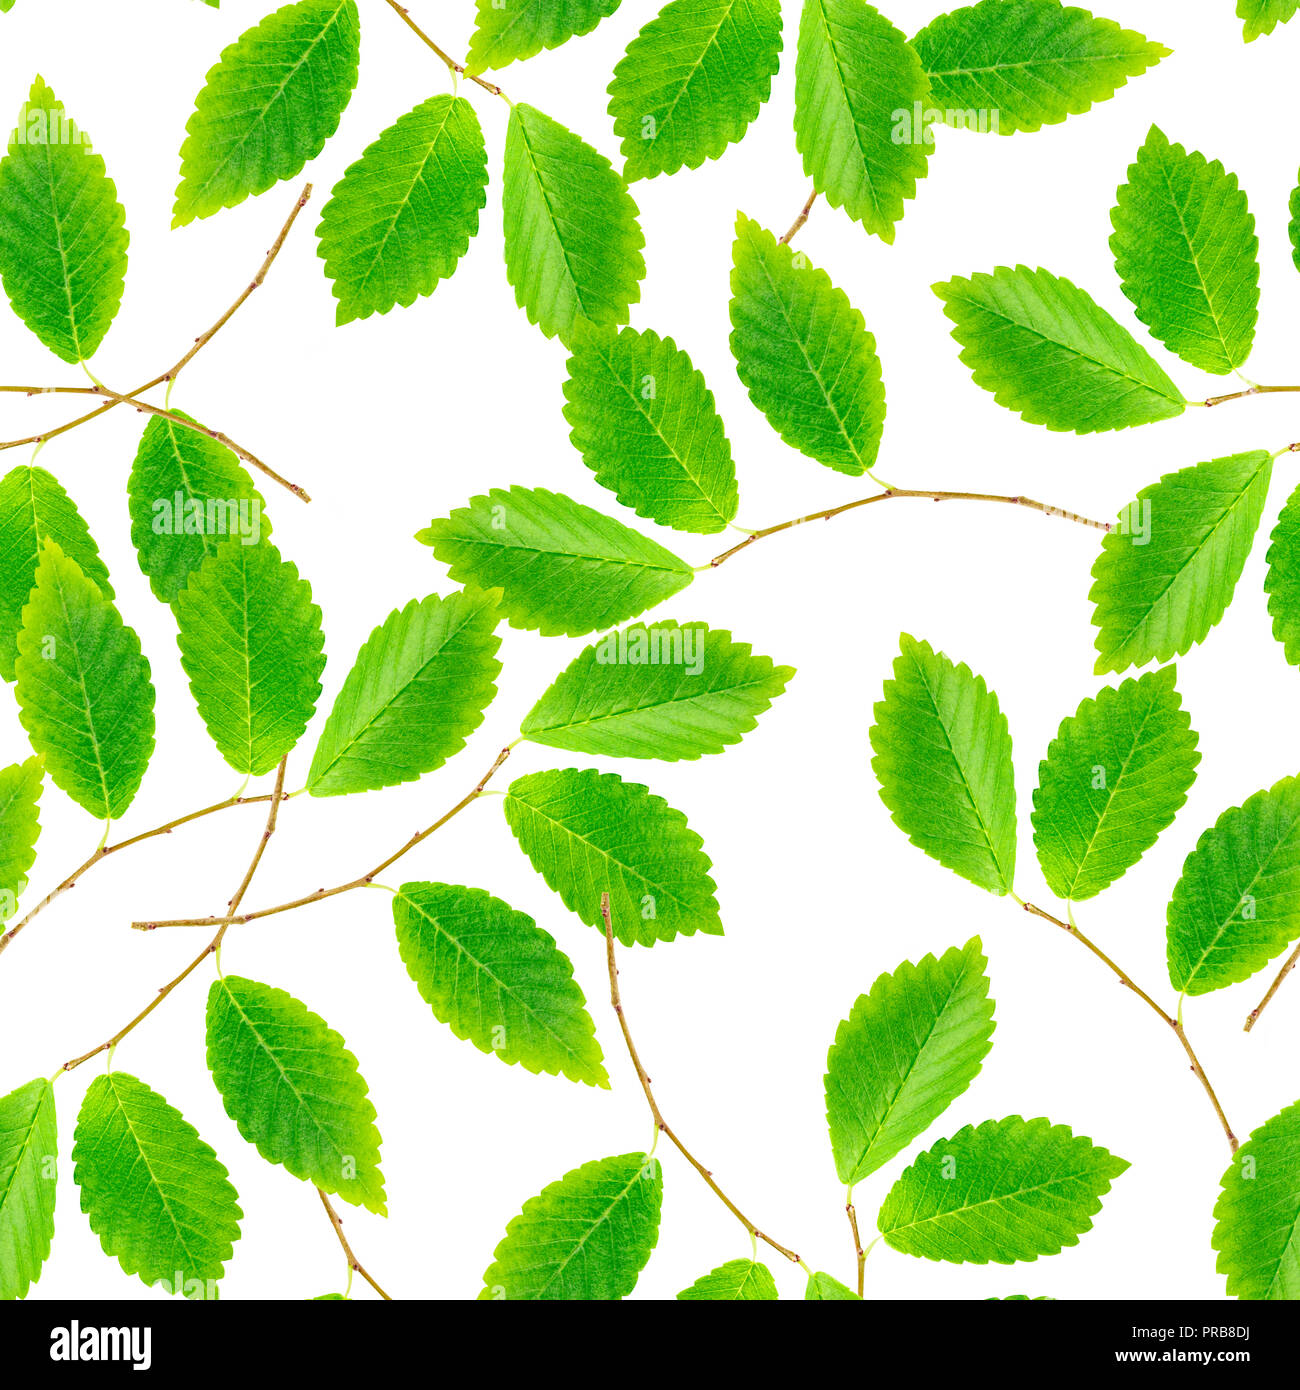 A seamless pattern of green leaves and branches on a white background, a vibrant repeat print - Stock Image